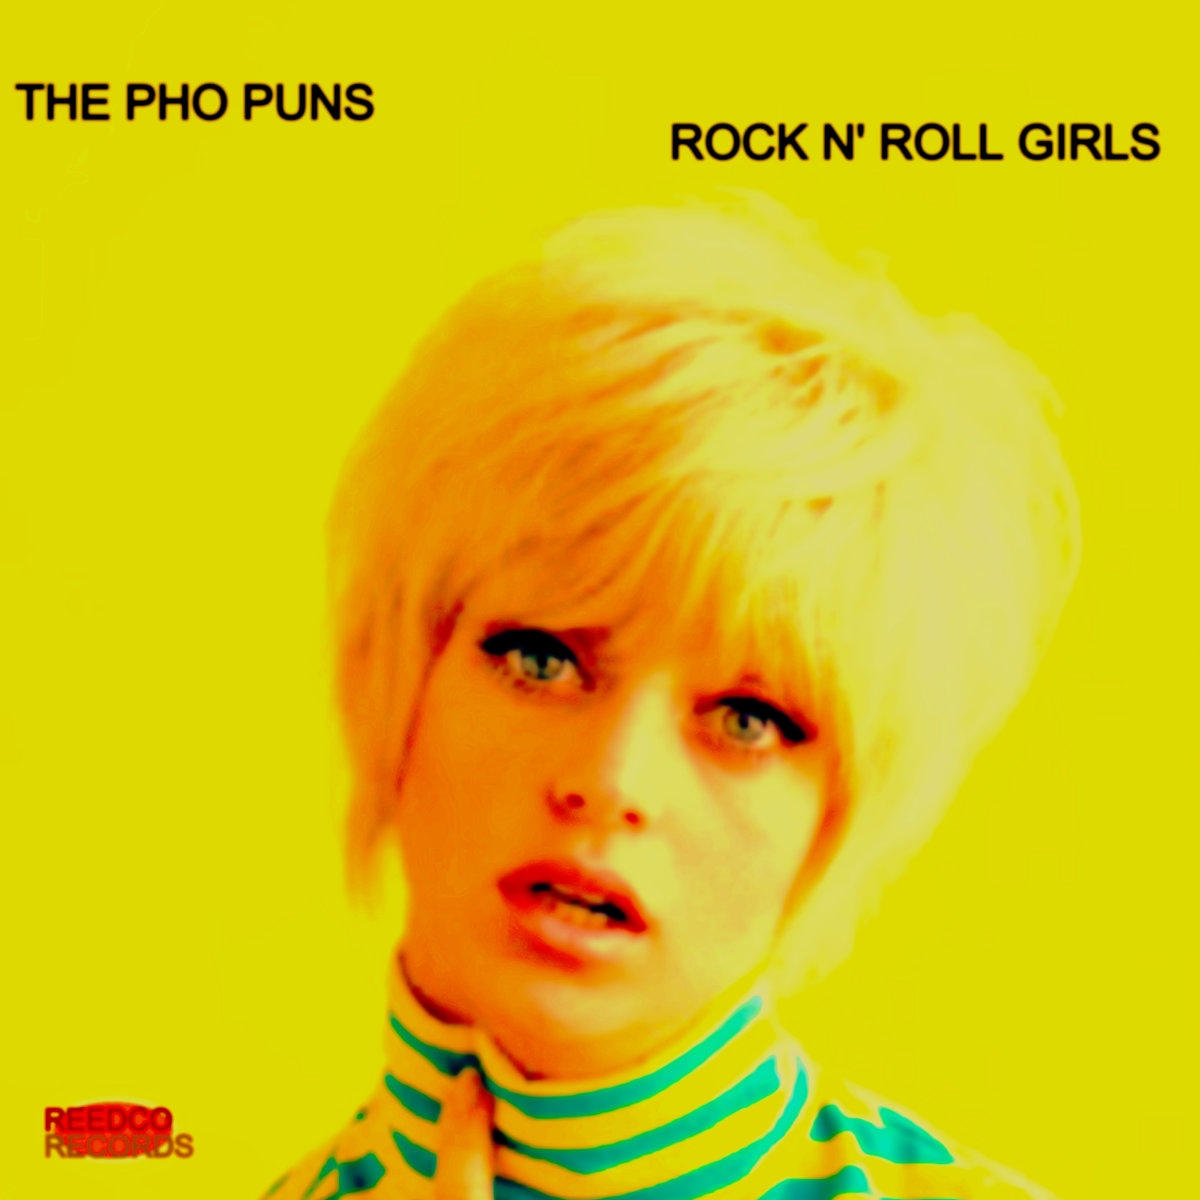 Rock Roll Girls Reedco Records